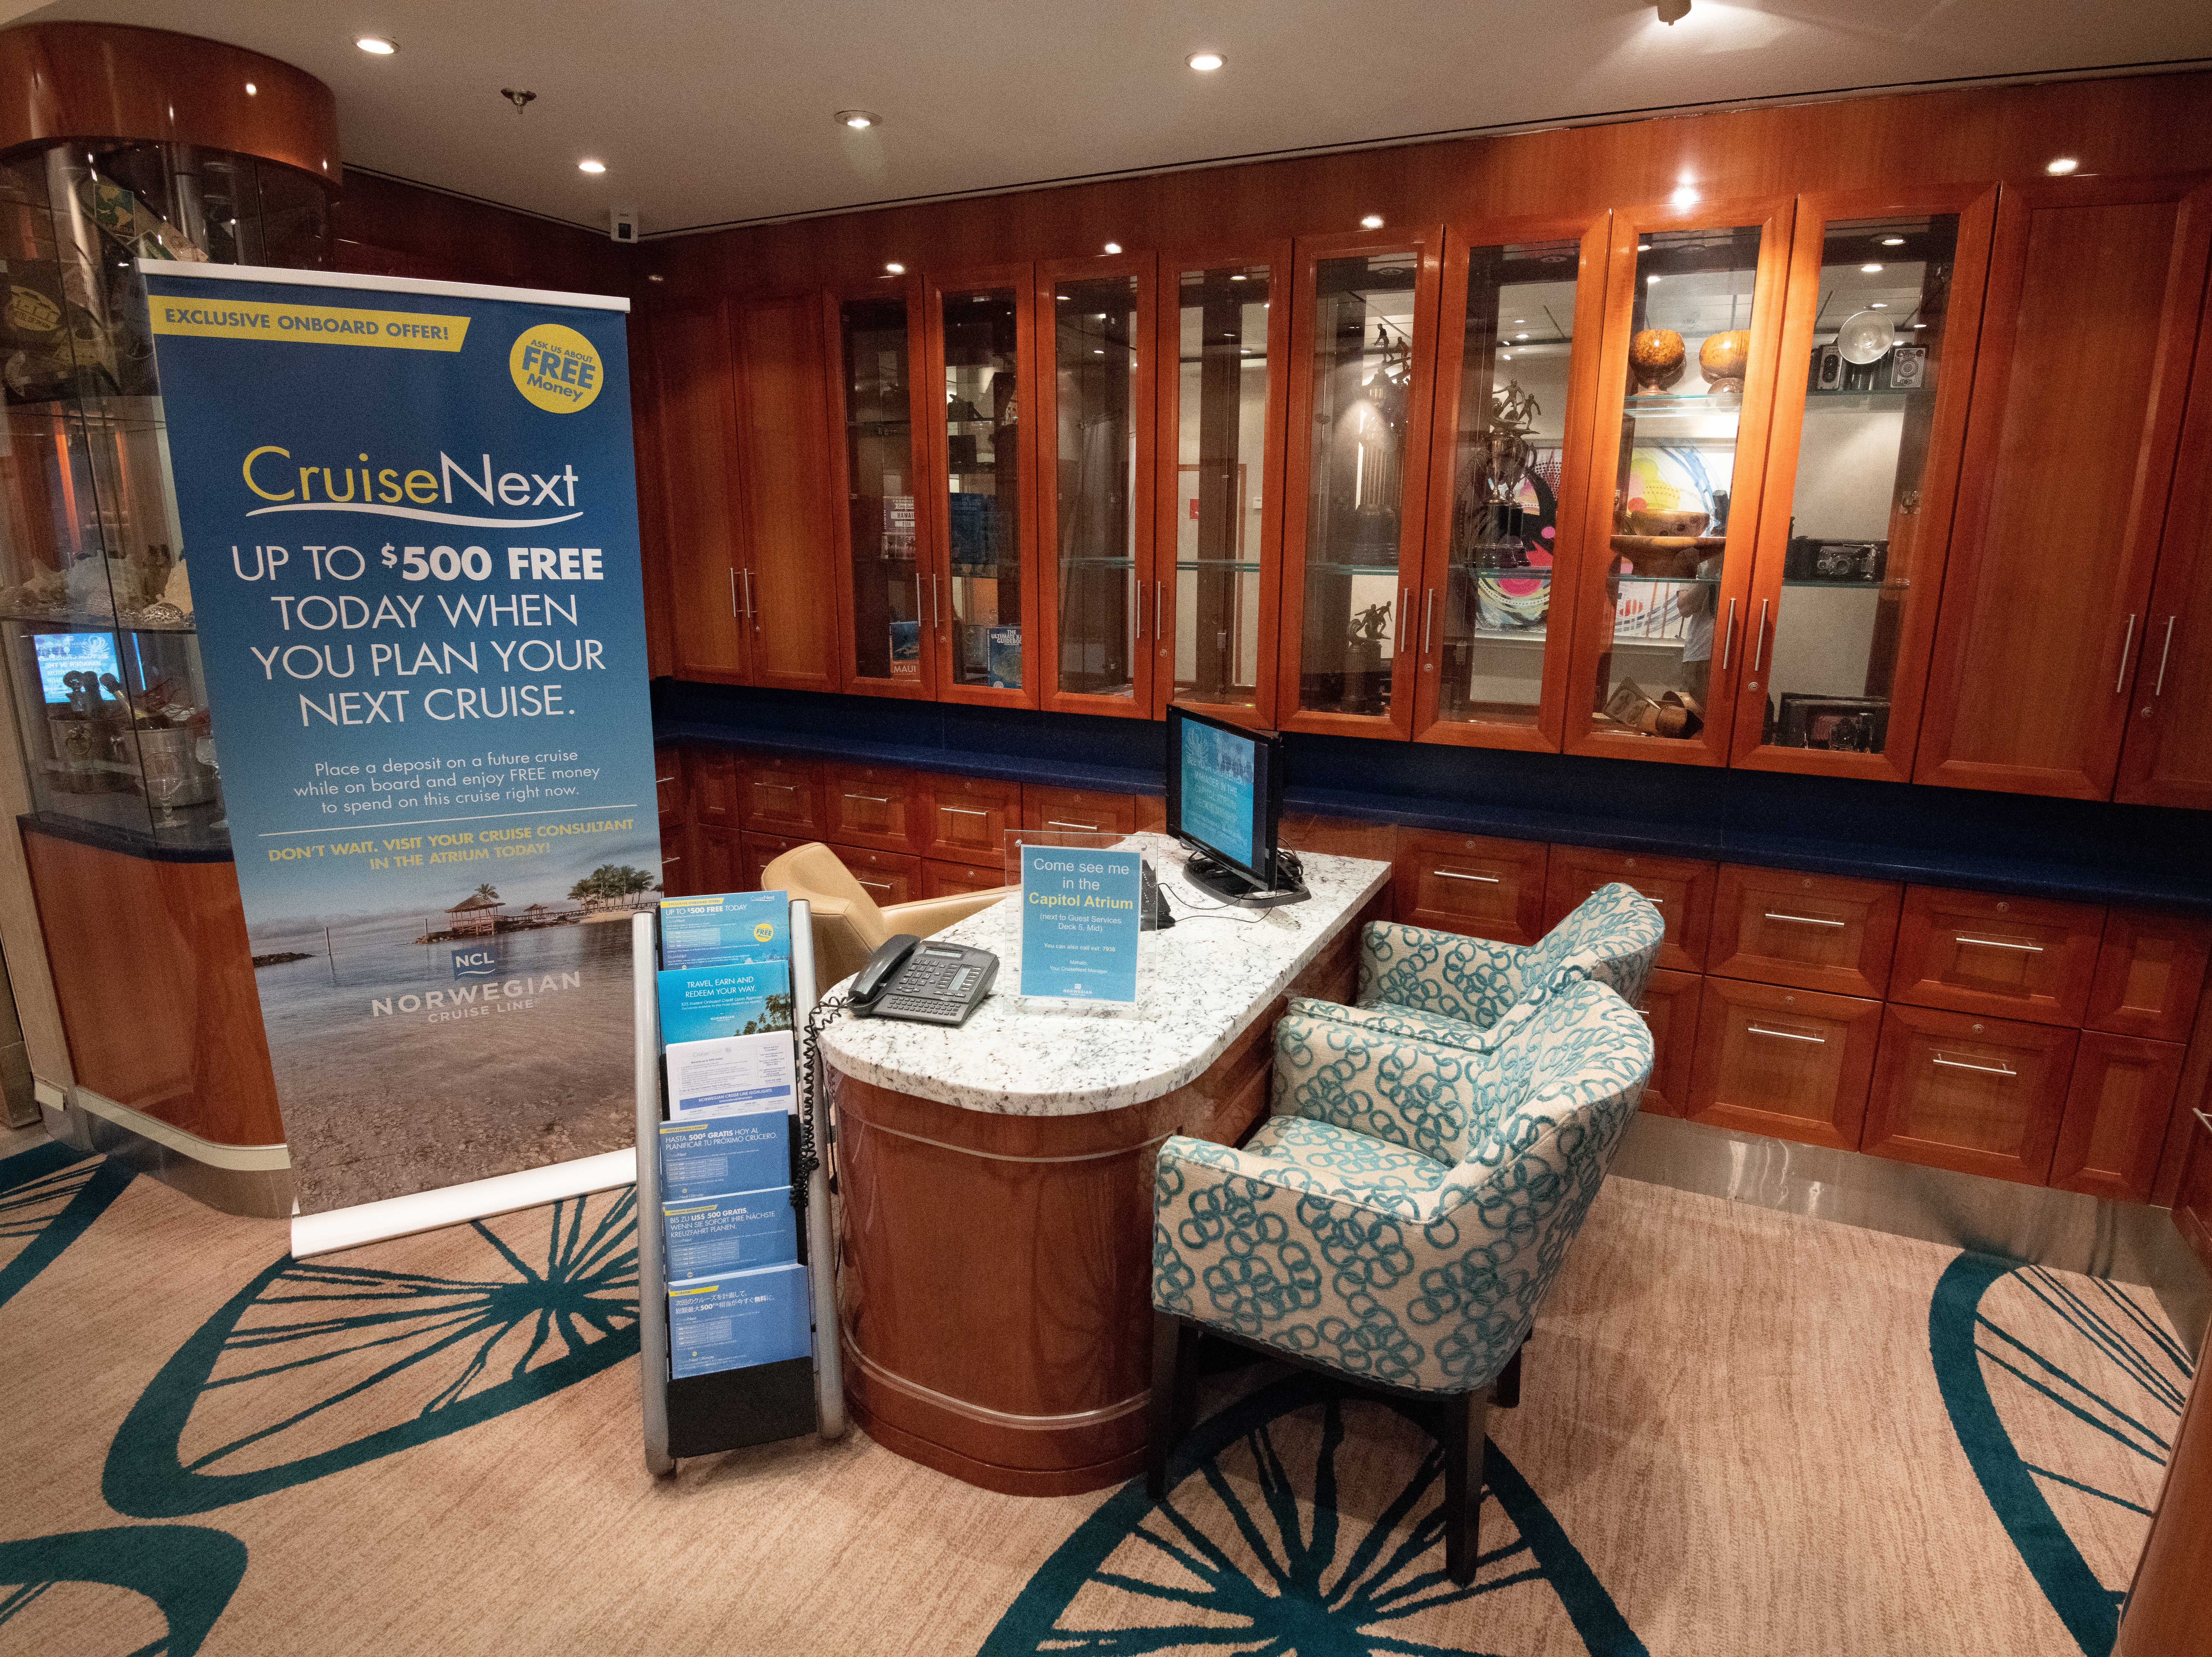 A nook in the hallway lining Deck 5 is home to a small desk where passengers can book future cruises.